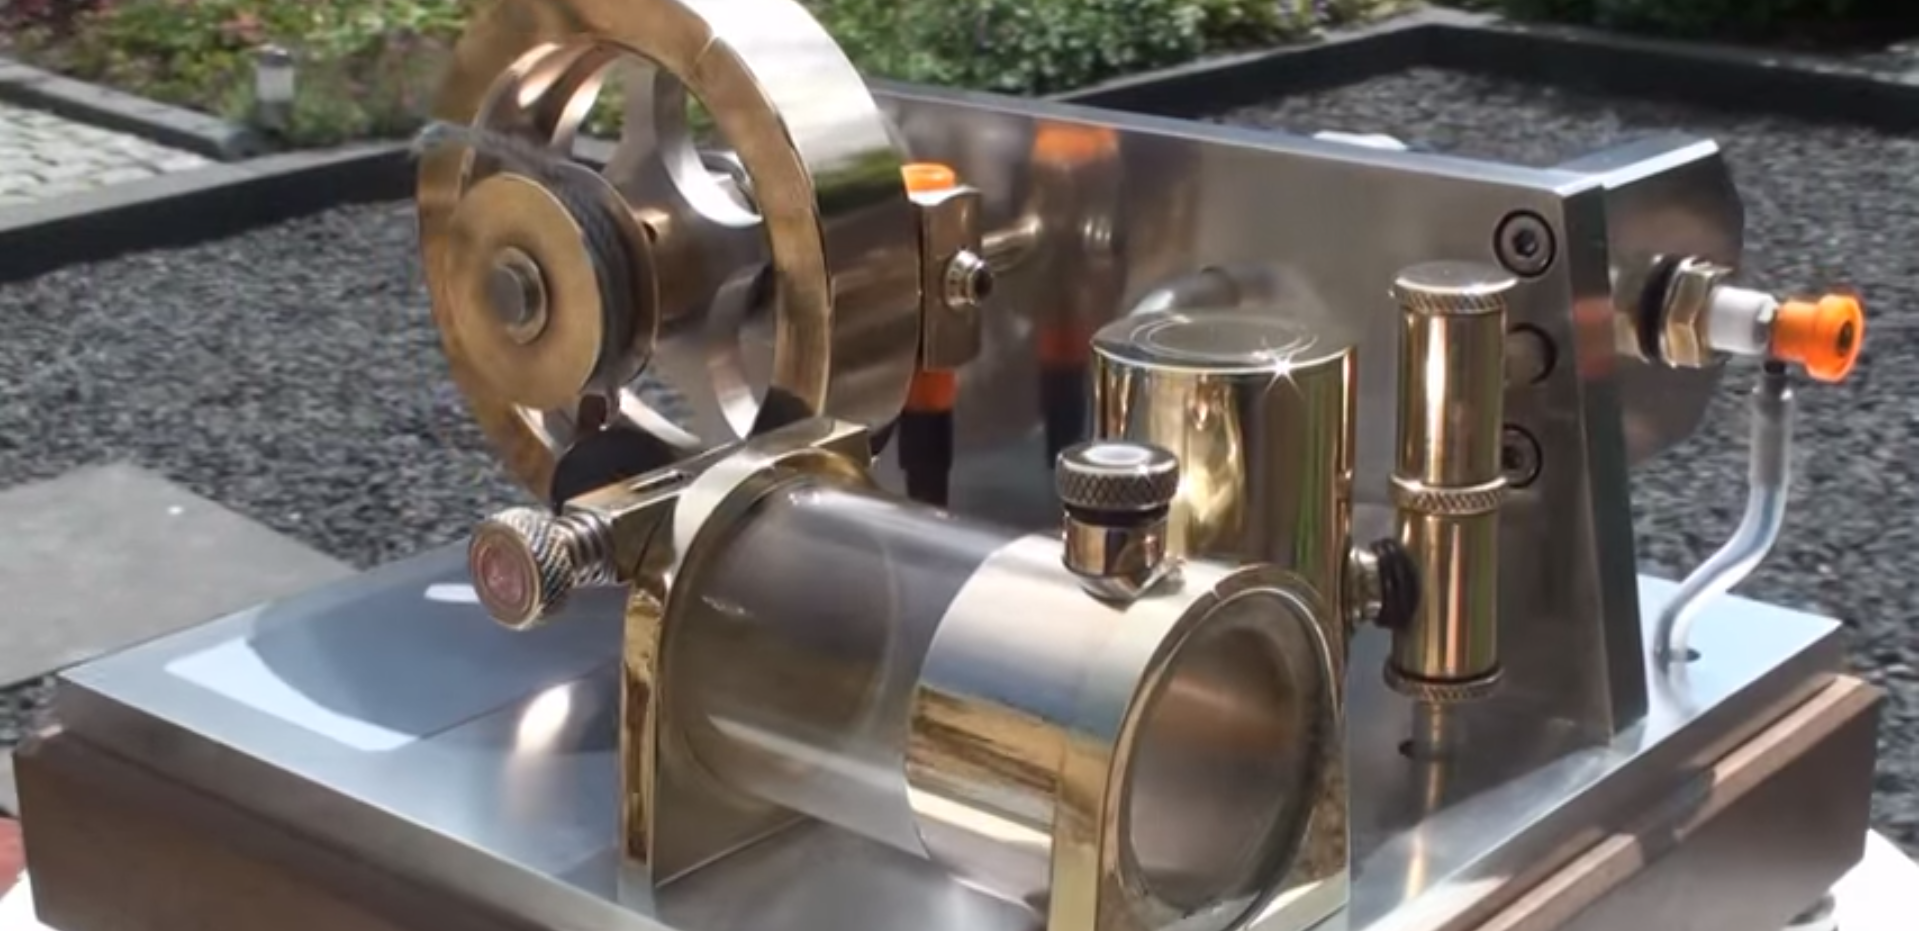 Beautiful Two-Stroke Engine Lets You Watch Its Inner Workings